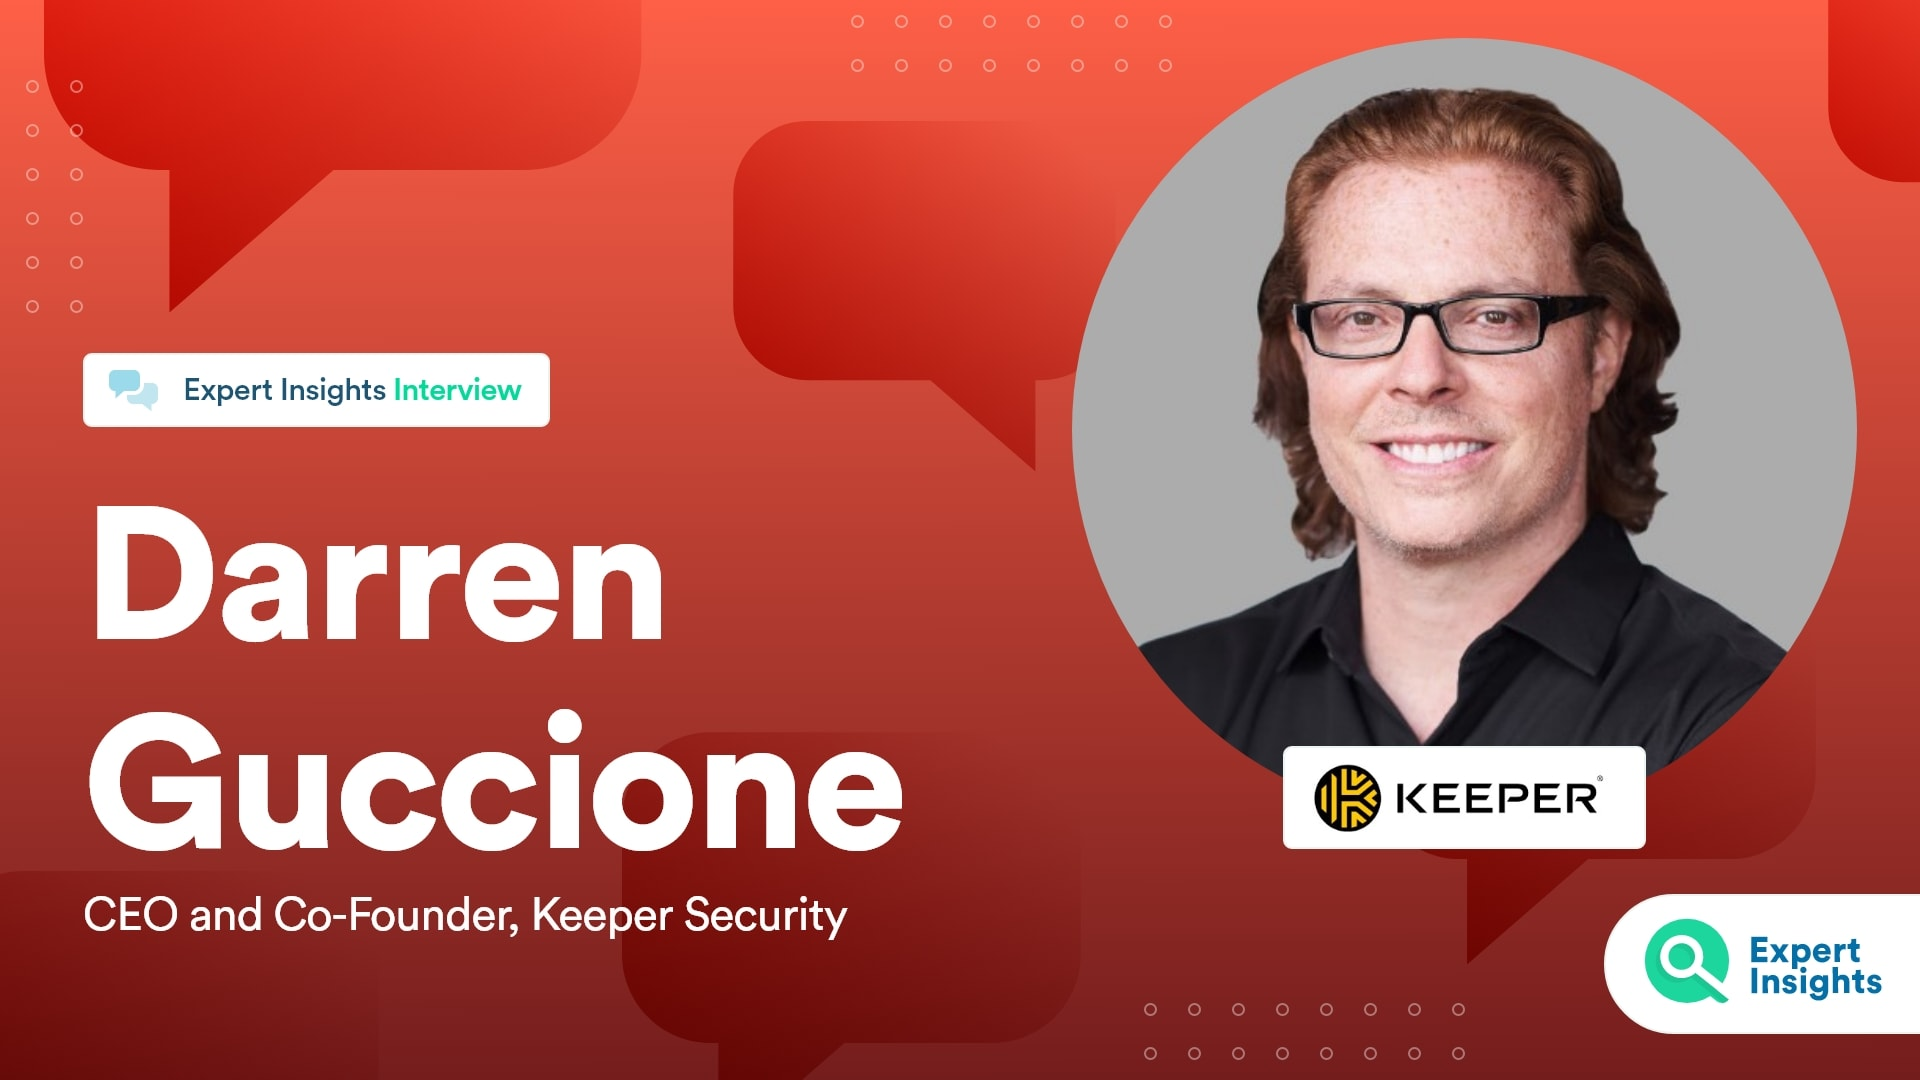 Interview With Darren Guccione Of Keeper Security - Expert Insights